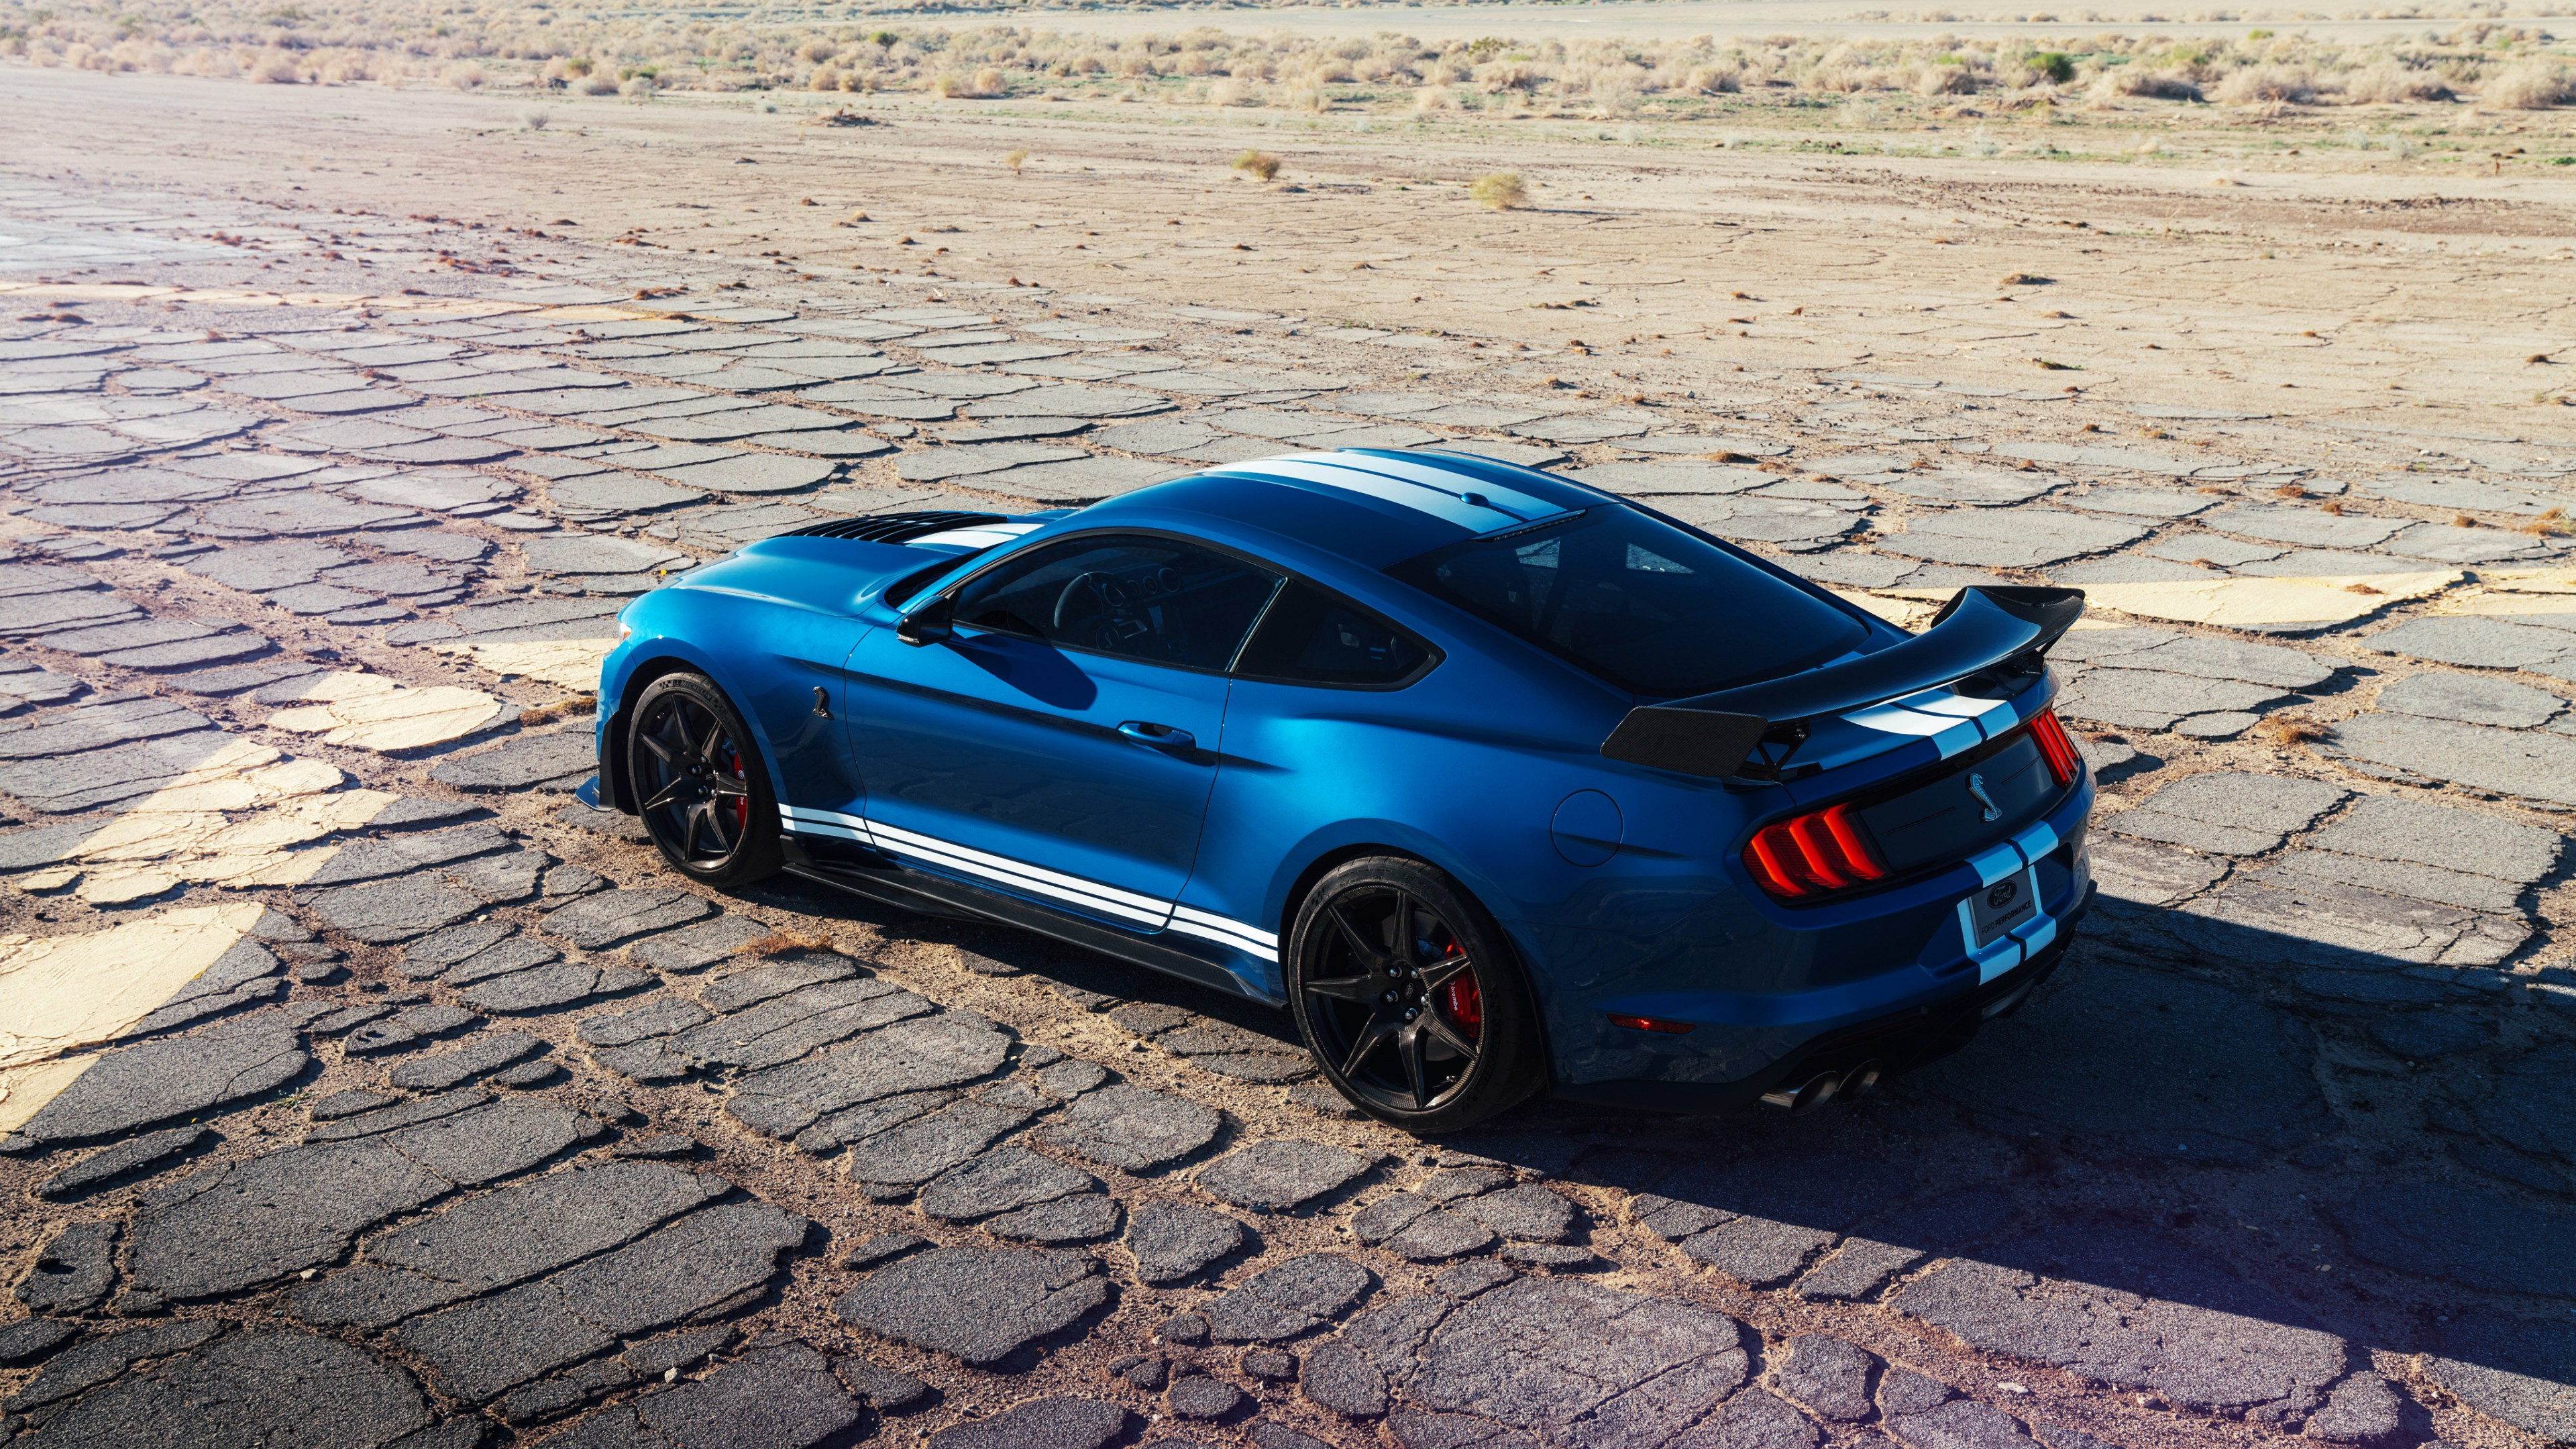 2020 Ford Mustang Shelby GT500 4K 2 Wallpaper | HD Car ...